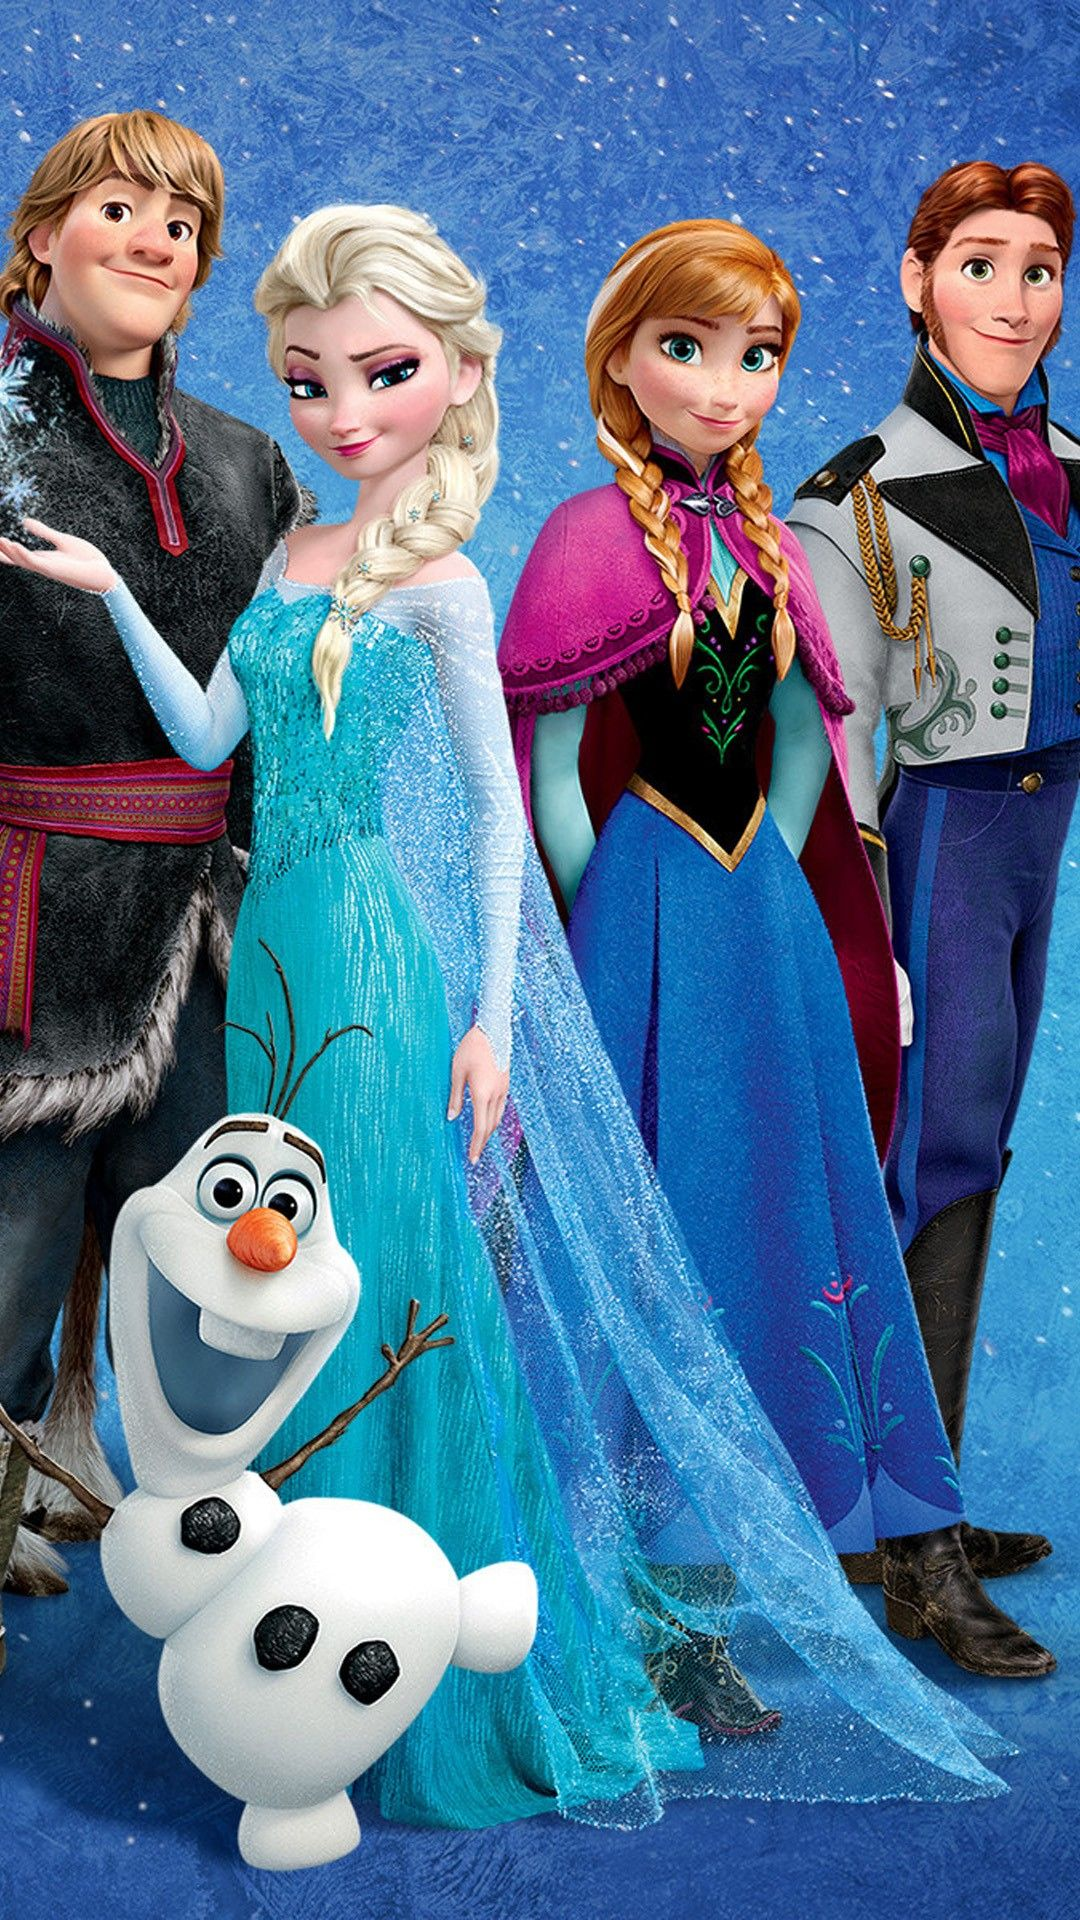 Frozen iphone 6 plus wallpaper 2014 christmas disney anna elsa kristoff hans olaf 2014 - Frozen anna disney ...